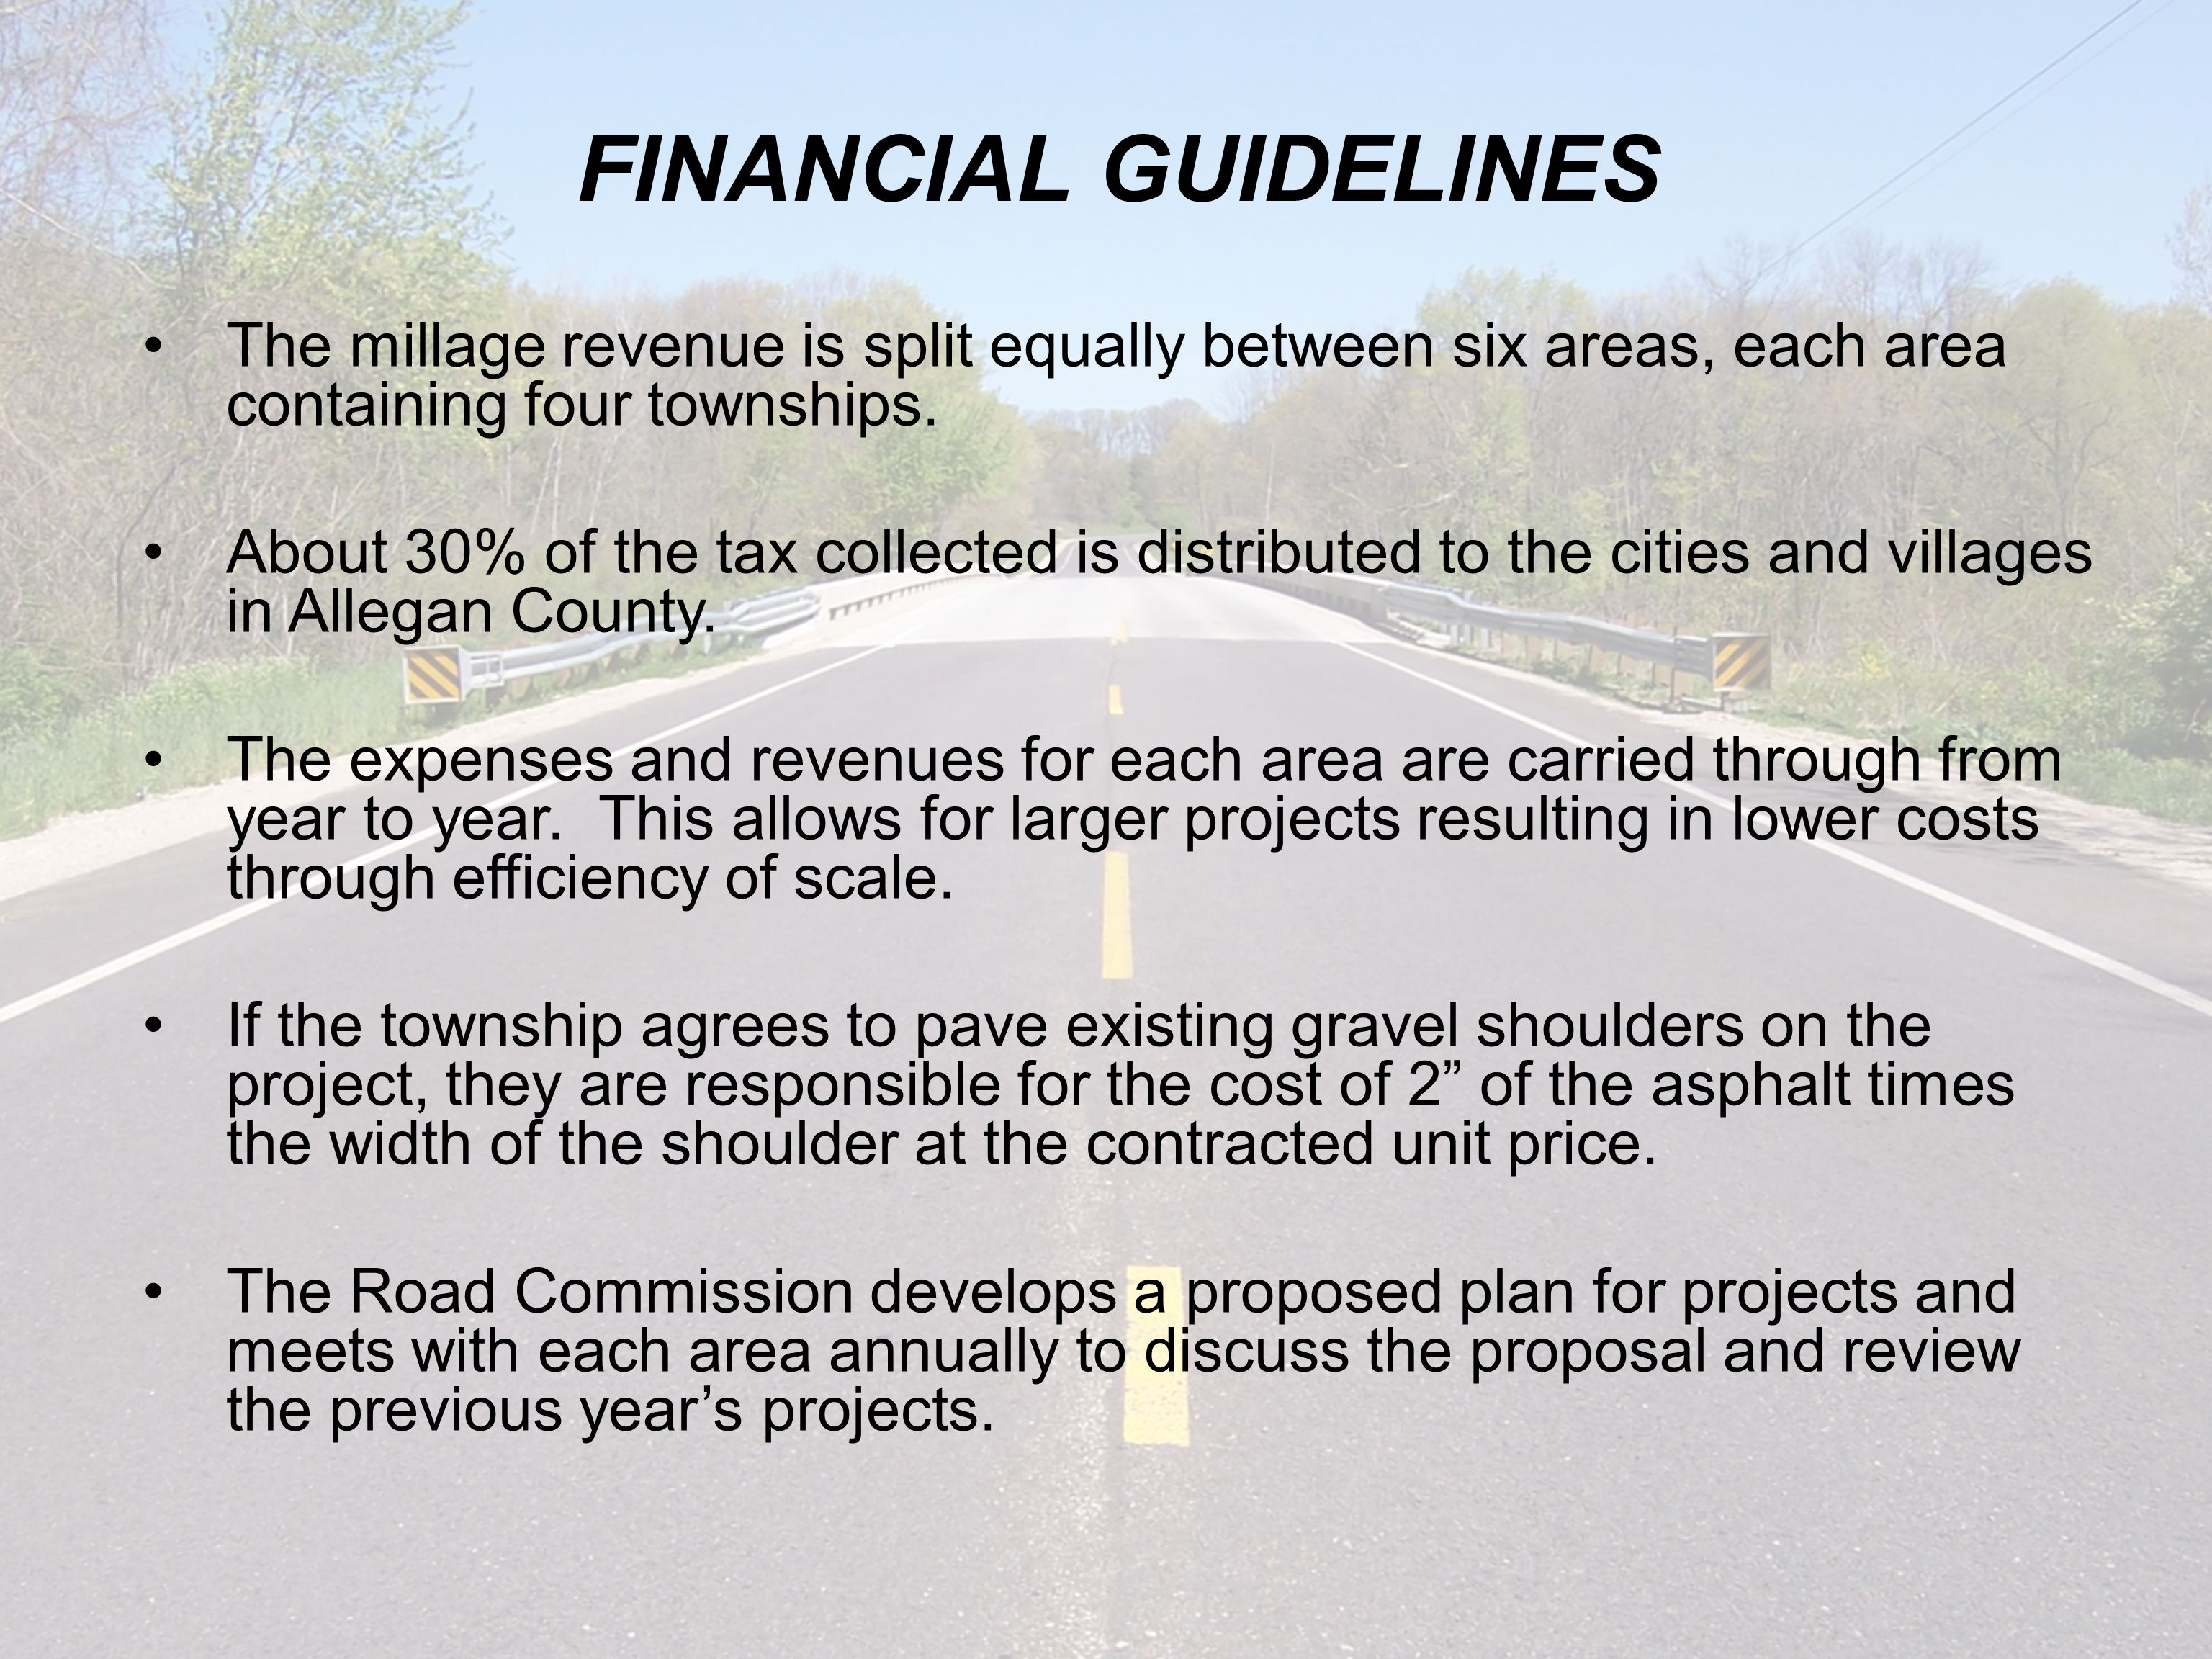 FINANCIAL GUIDELINES The millage revenue is split equally between six areas, each area containing four townships. About 30% of the tax collected is di